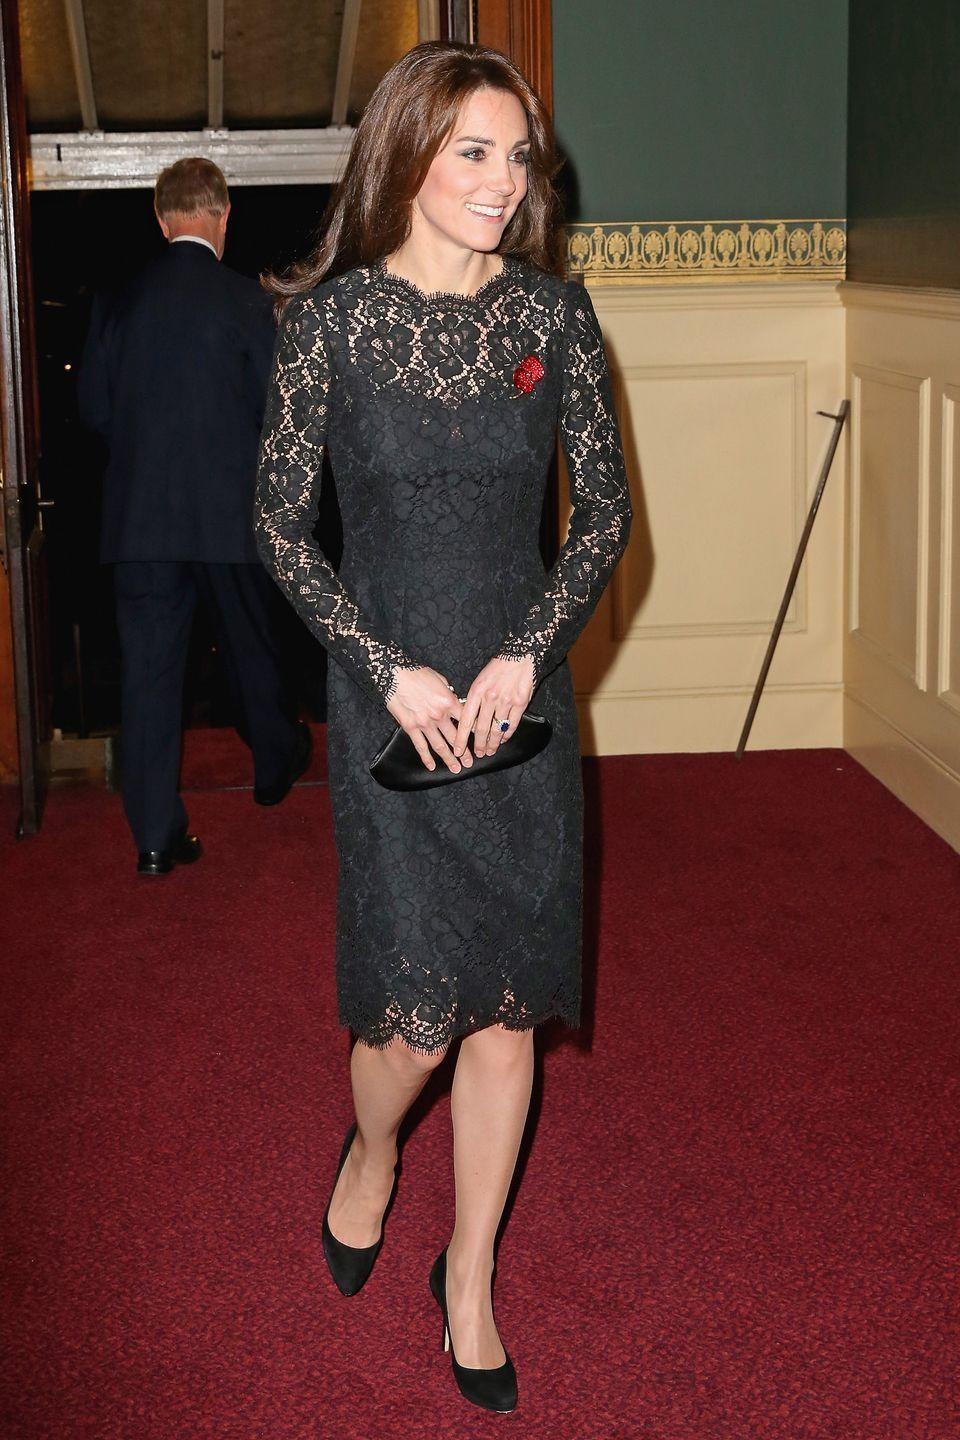 <p>At the Festival of Remembrance at Royal Albert Hall in a black lace Dolce & Gabbana dress and Jimmy Choo pumps.</p>